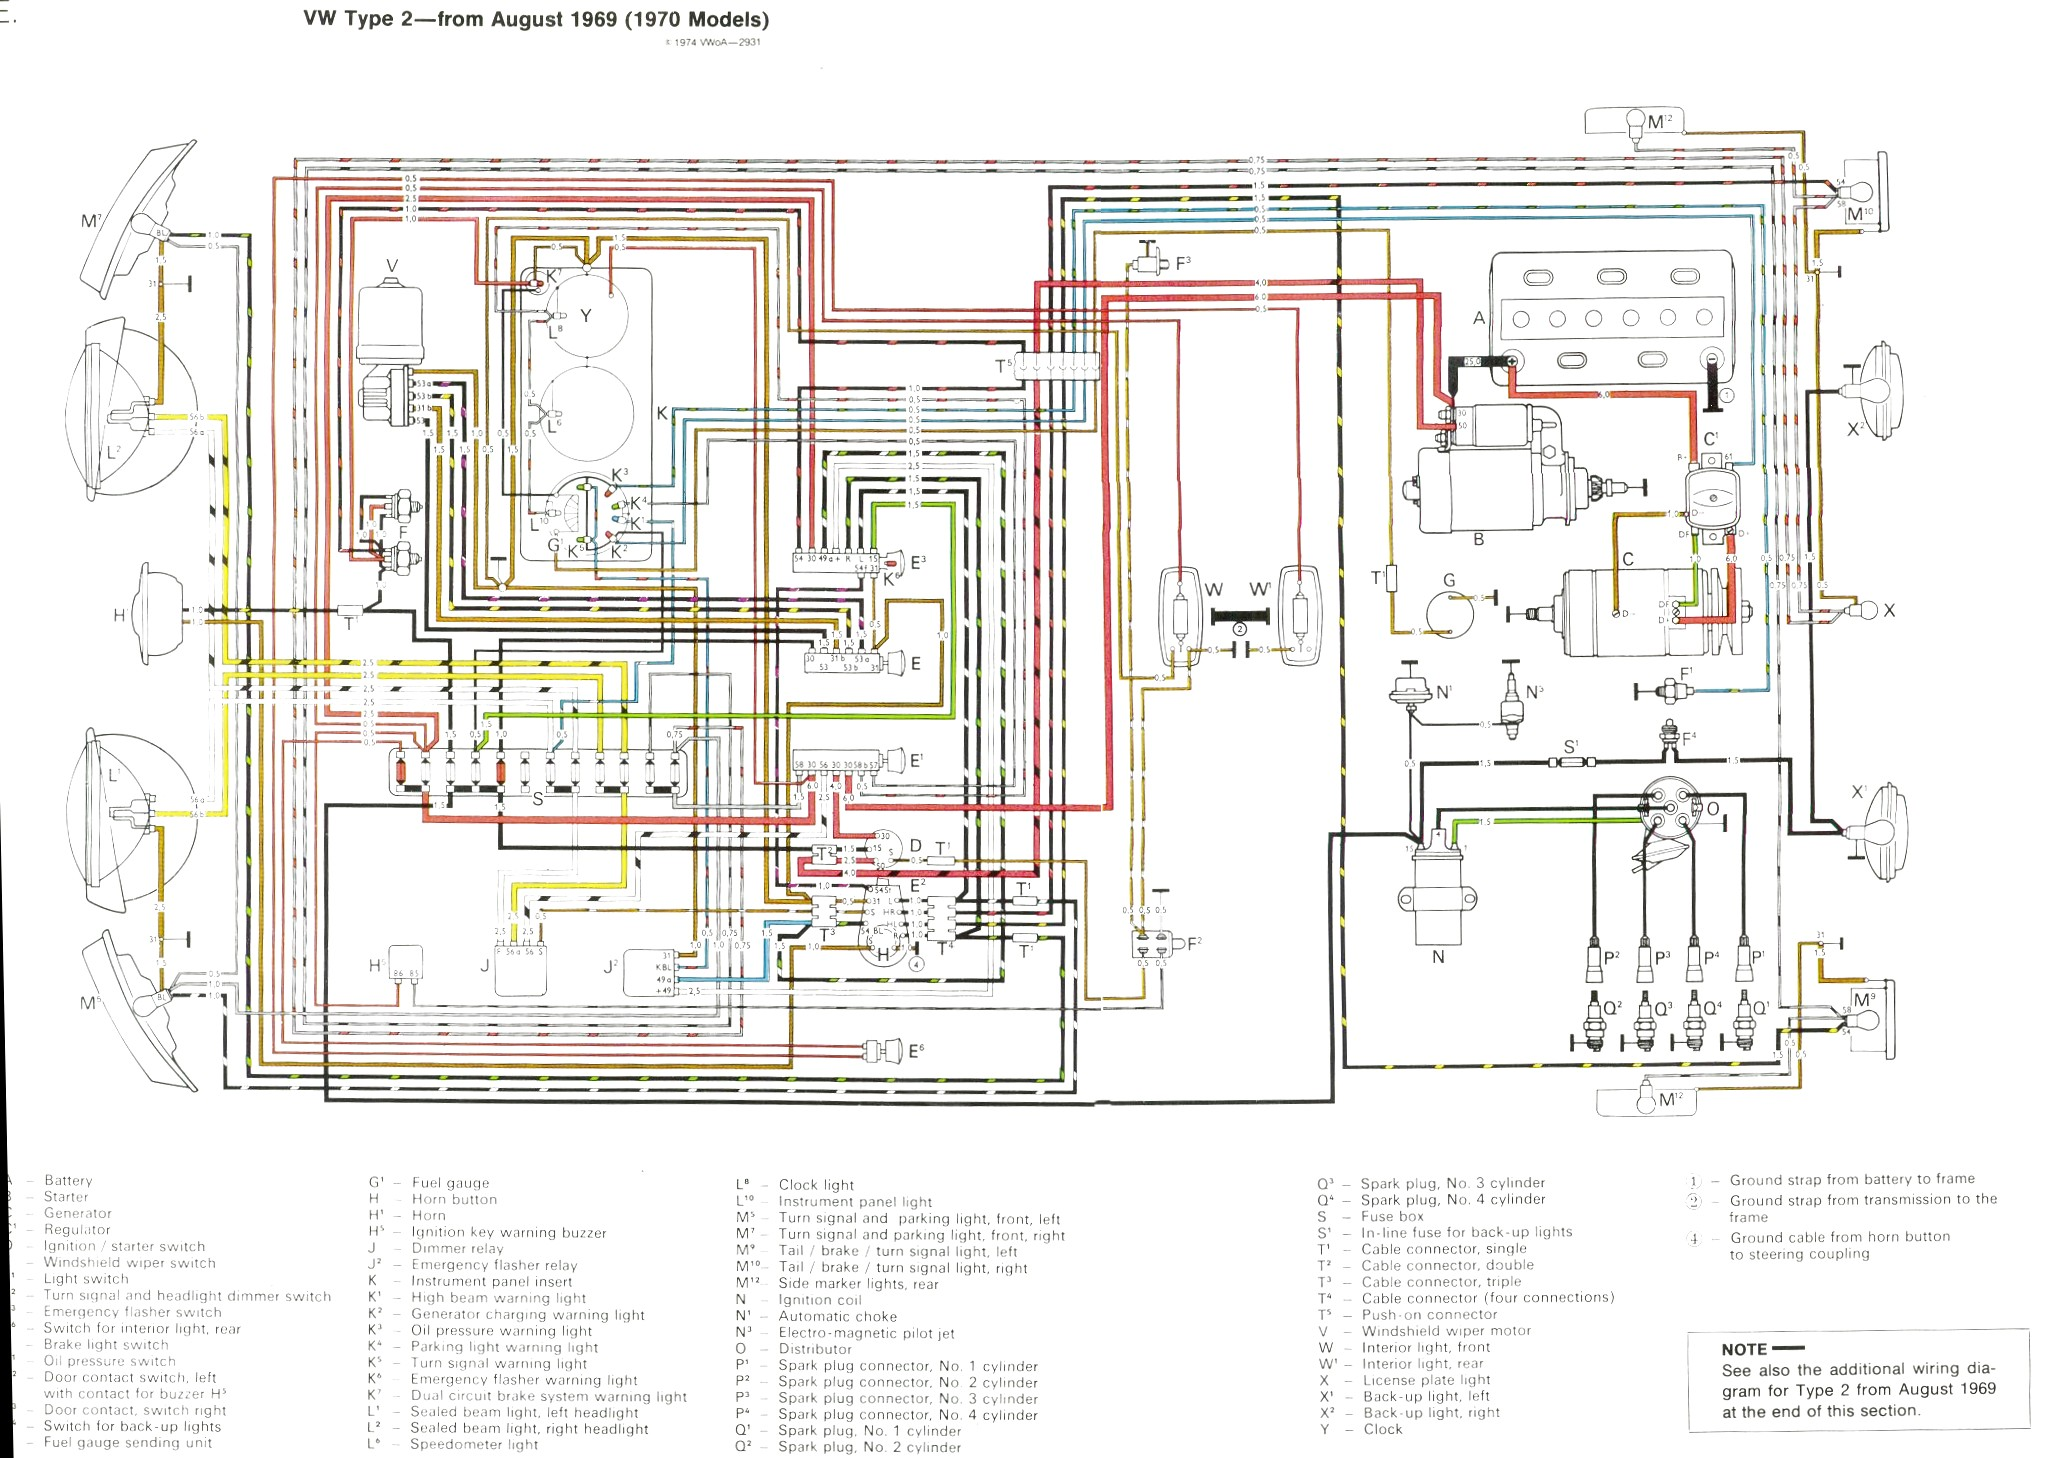 Vw Bus And Other Wiring Diagrams 97 Pat Tdi Fuse Box